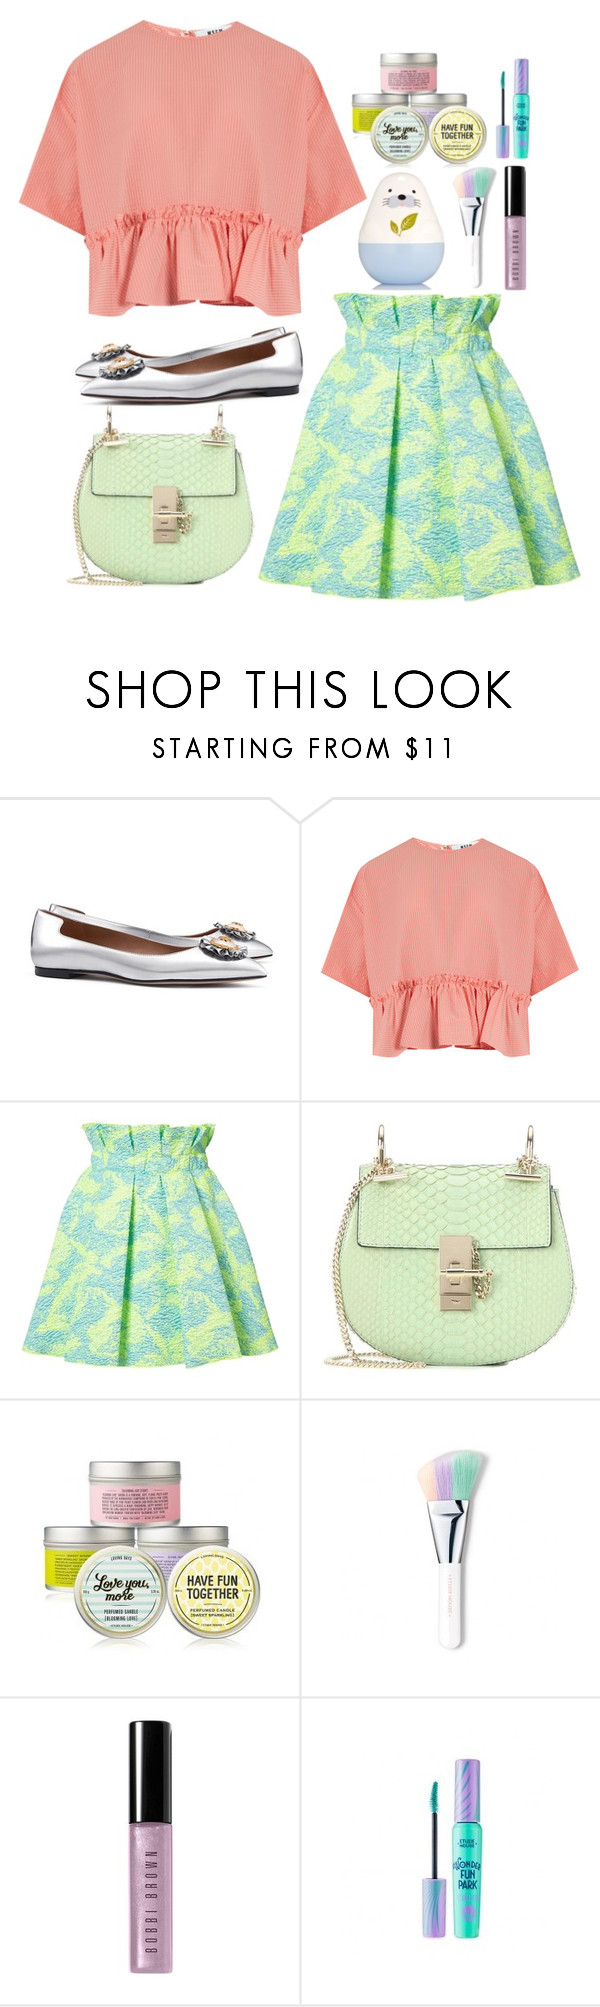 """""""call me baby✨"""" by indahnoviana97 ❤ liked on Polyvore featuring Tory Burch, MSGM, Chloé and Bobbi Brown Cosmetics"""